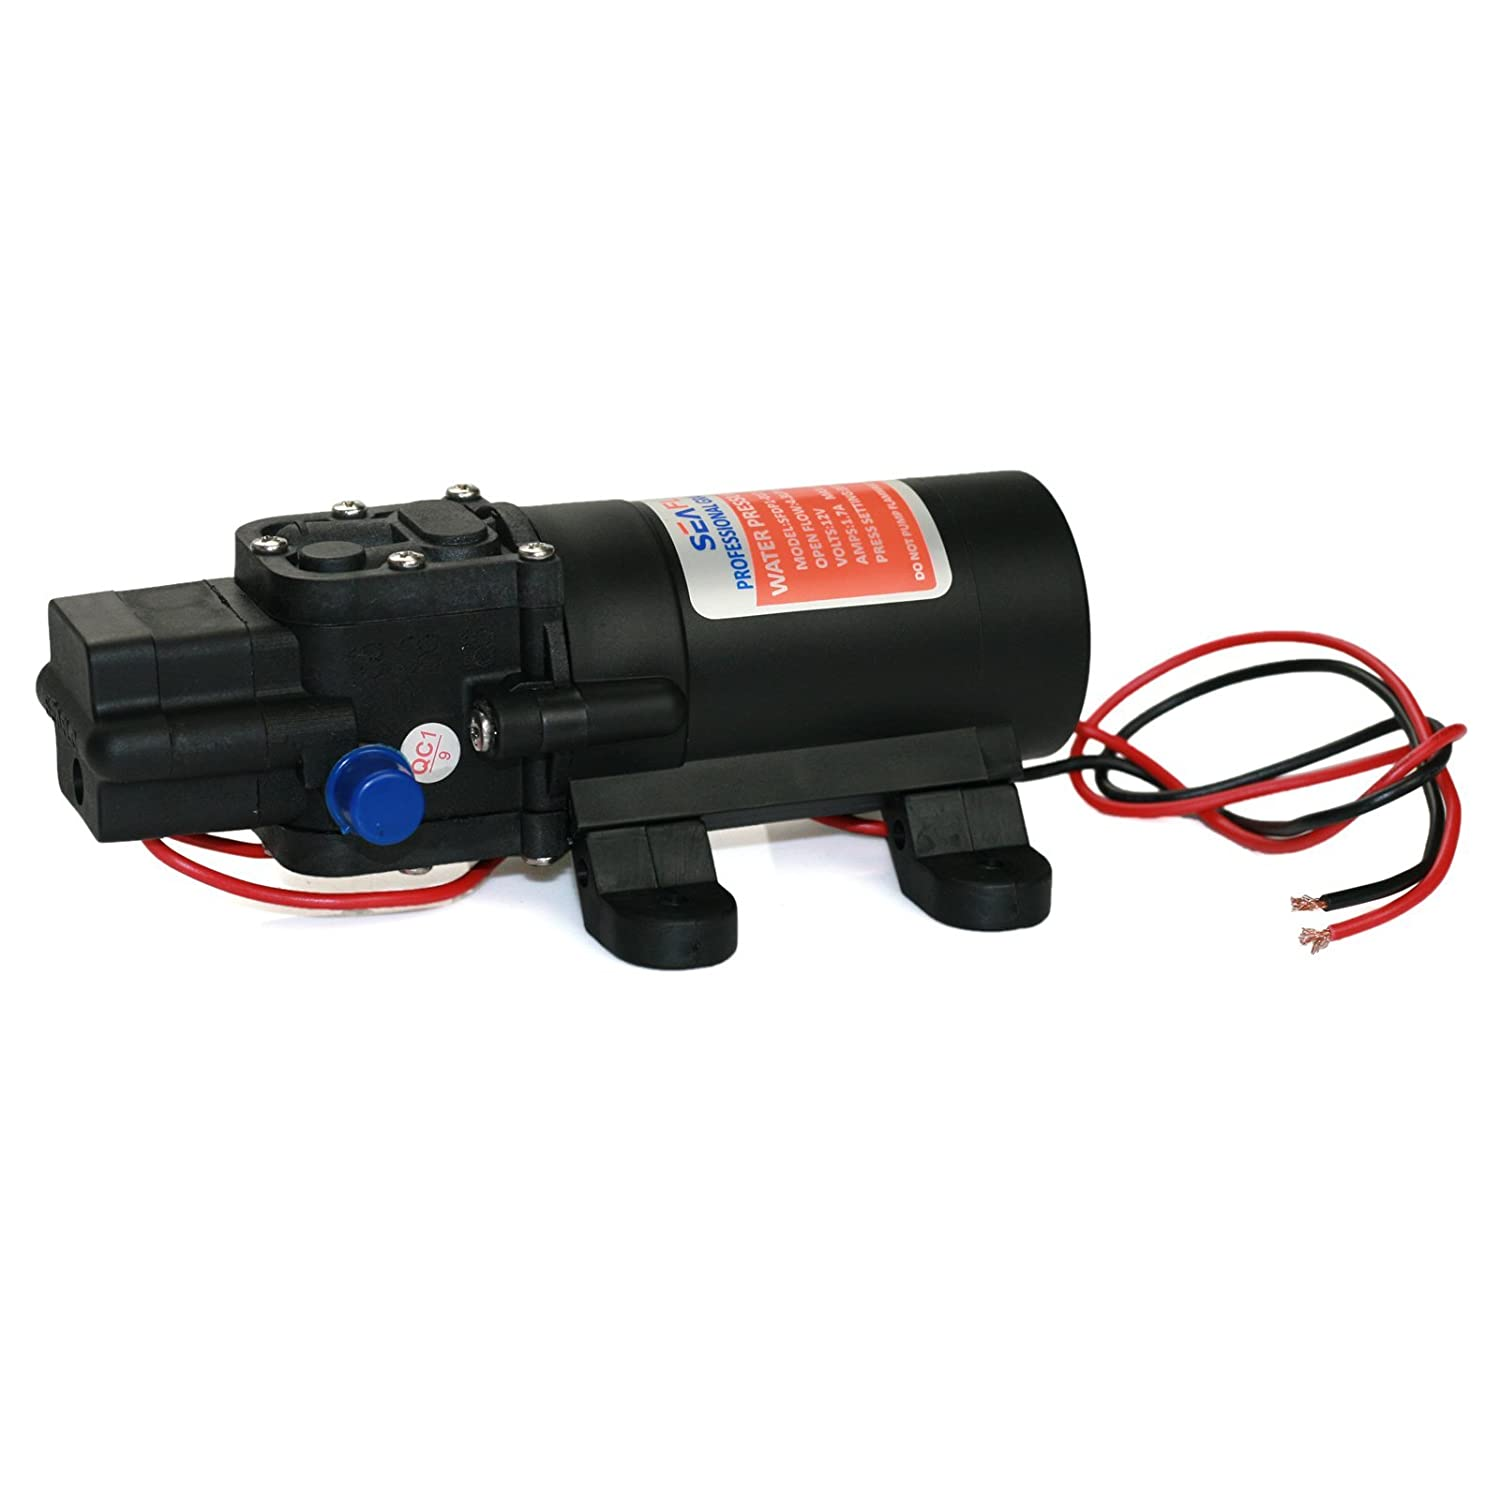 Seaflo 12v Dc 12 Gpm 35 Psi 21 Series Diaphragm Water Home A C Compressor Switch Wiring Pressure Pump For Caravan Rv Boat Marine Sports Outdoors